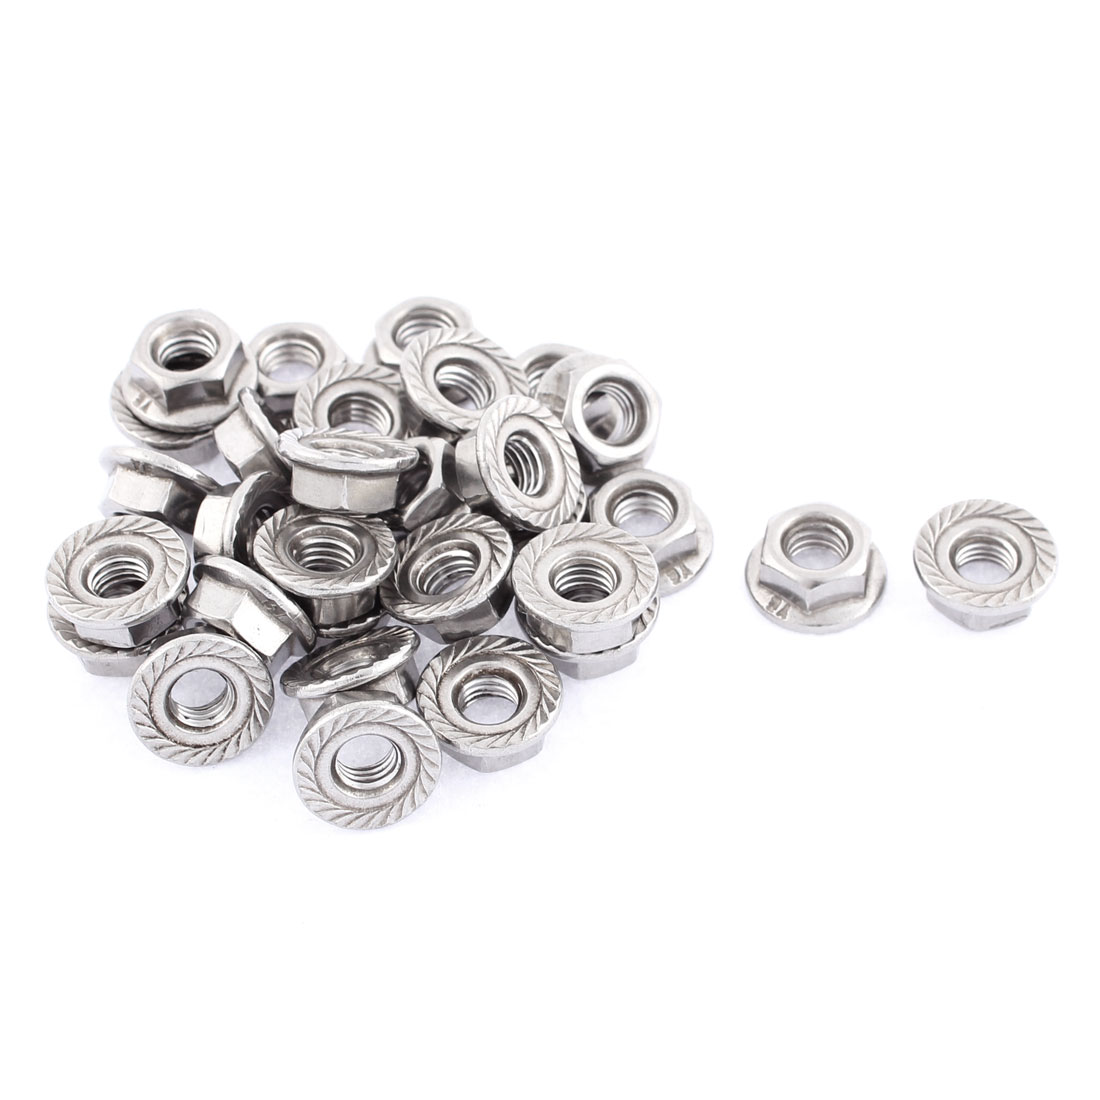 M6 Thread Dia Stainless Steel Hex Hexagon Flange Lock Nuts 30pcs